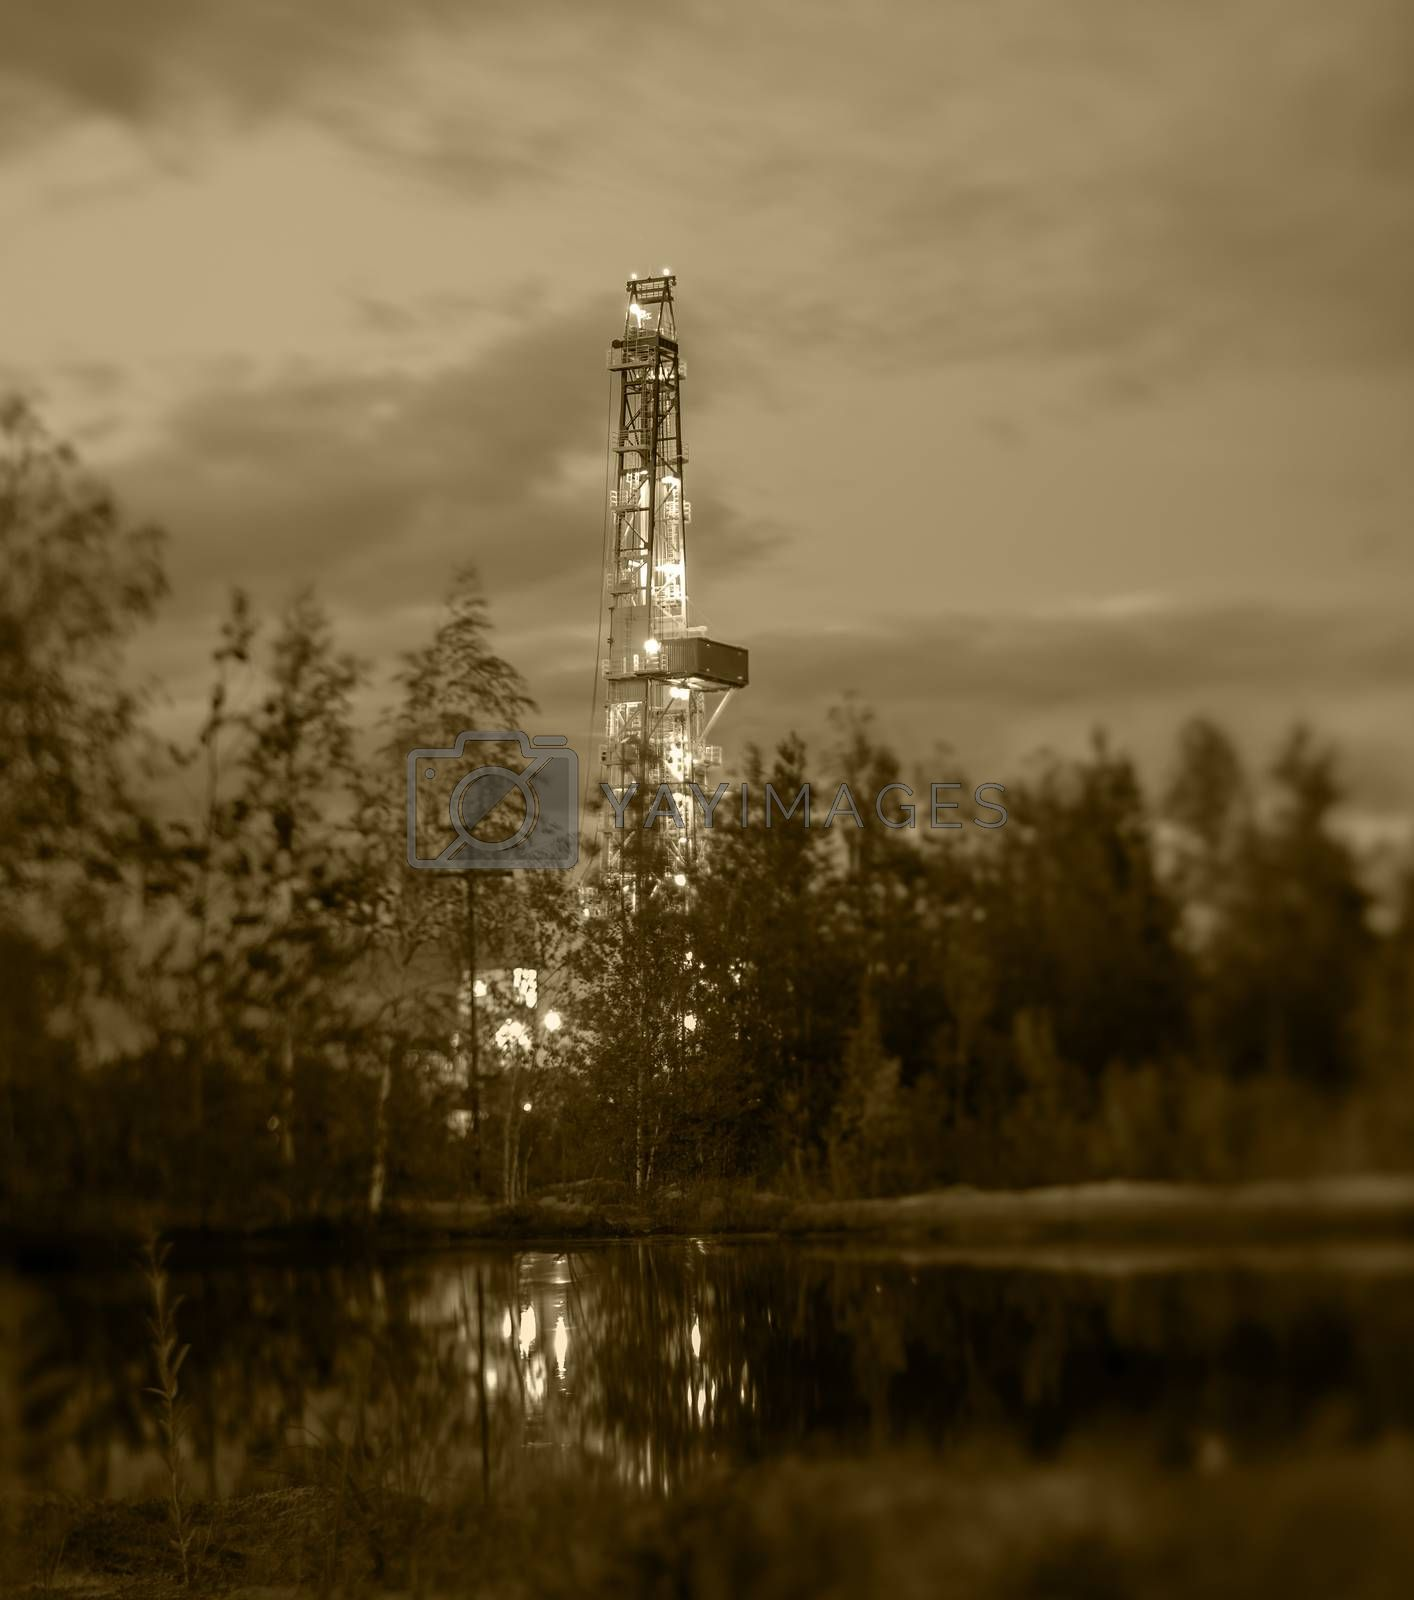 Night landscape with the drilling rig. Selective focus, shallow depth of field.